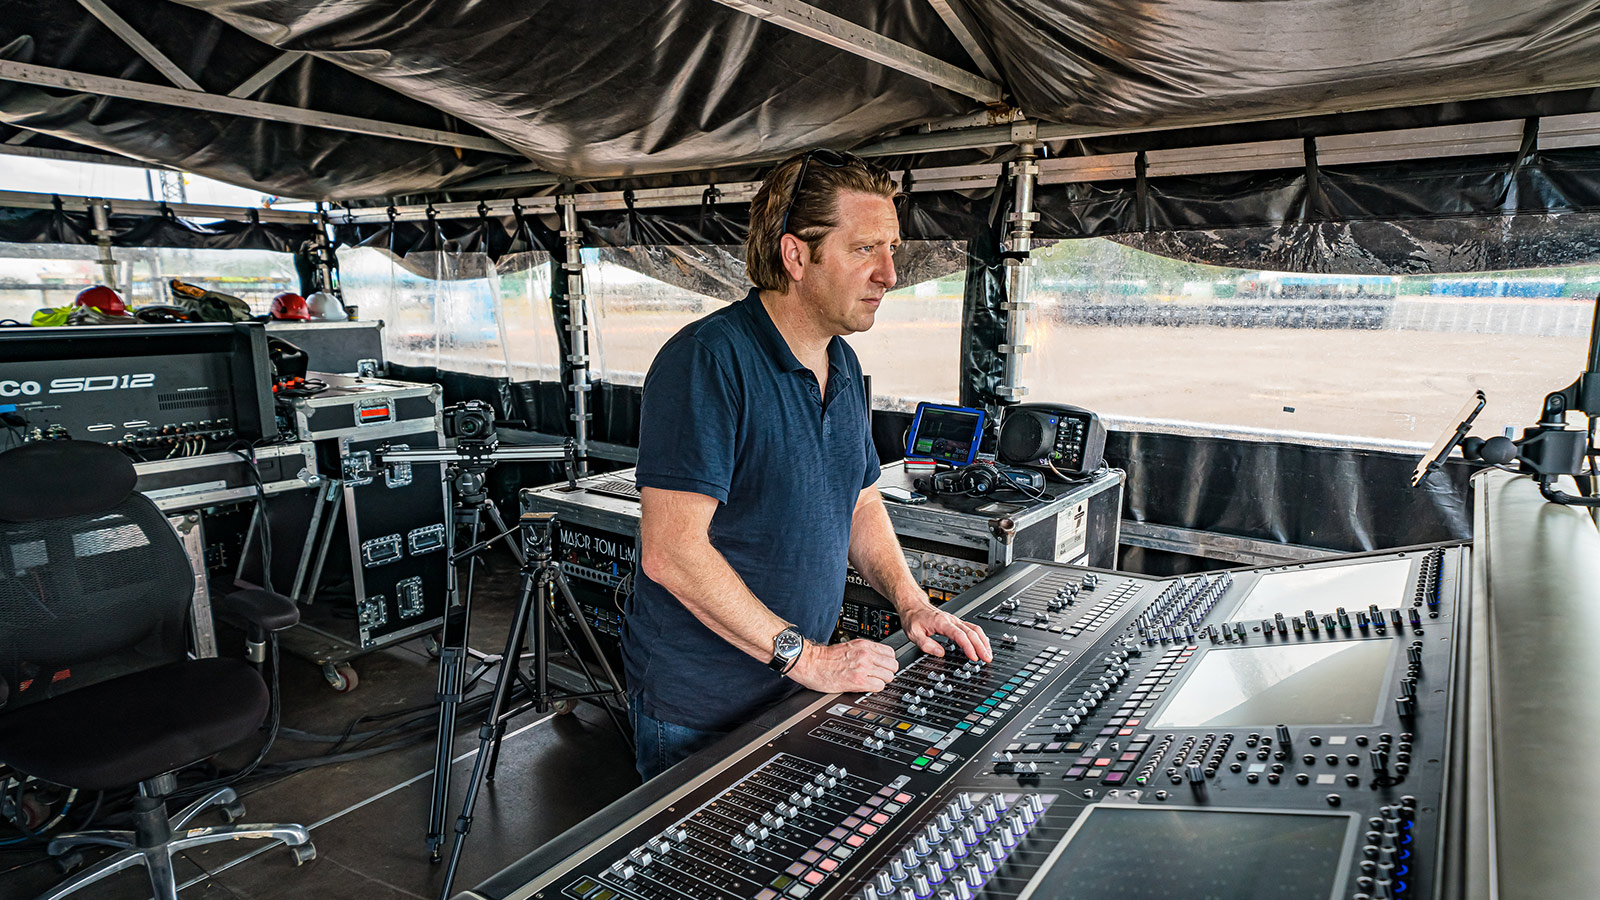 Chris Marsh, Ed Sheeran Production Manager & FOH Engineer